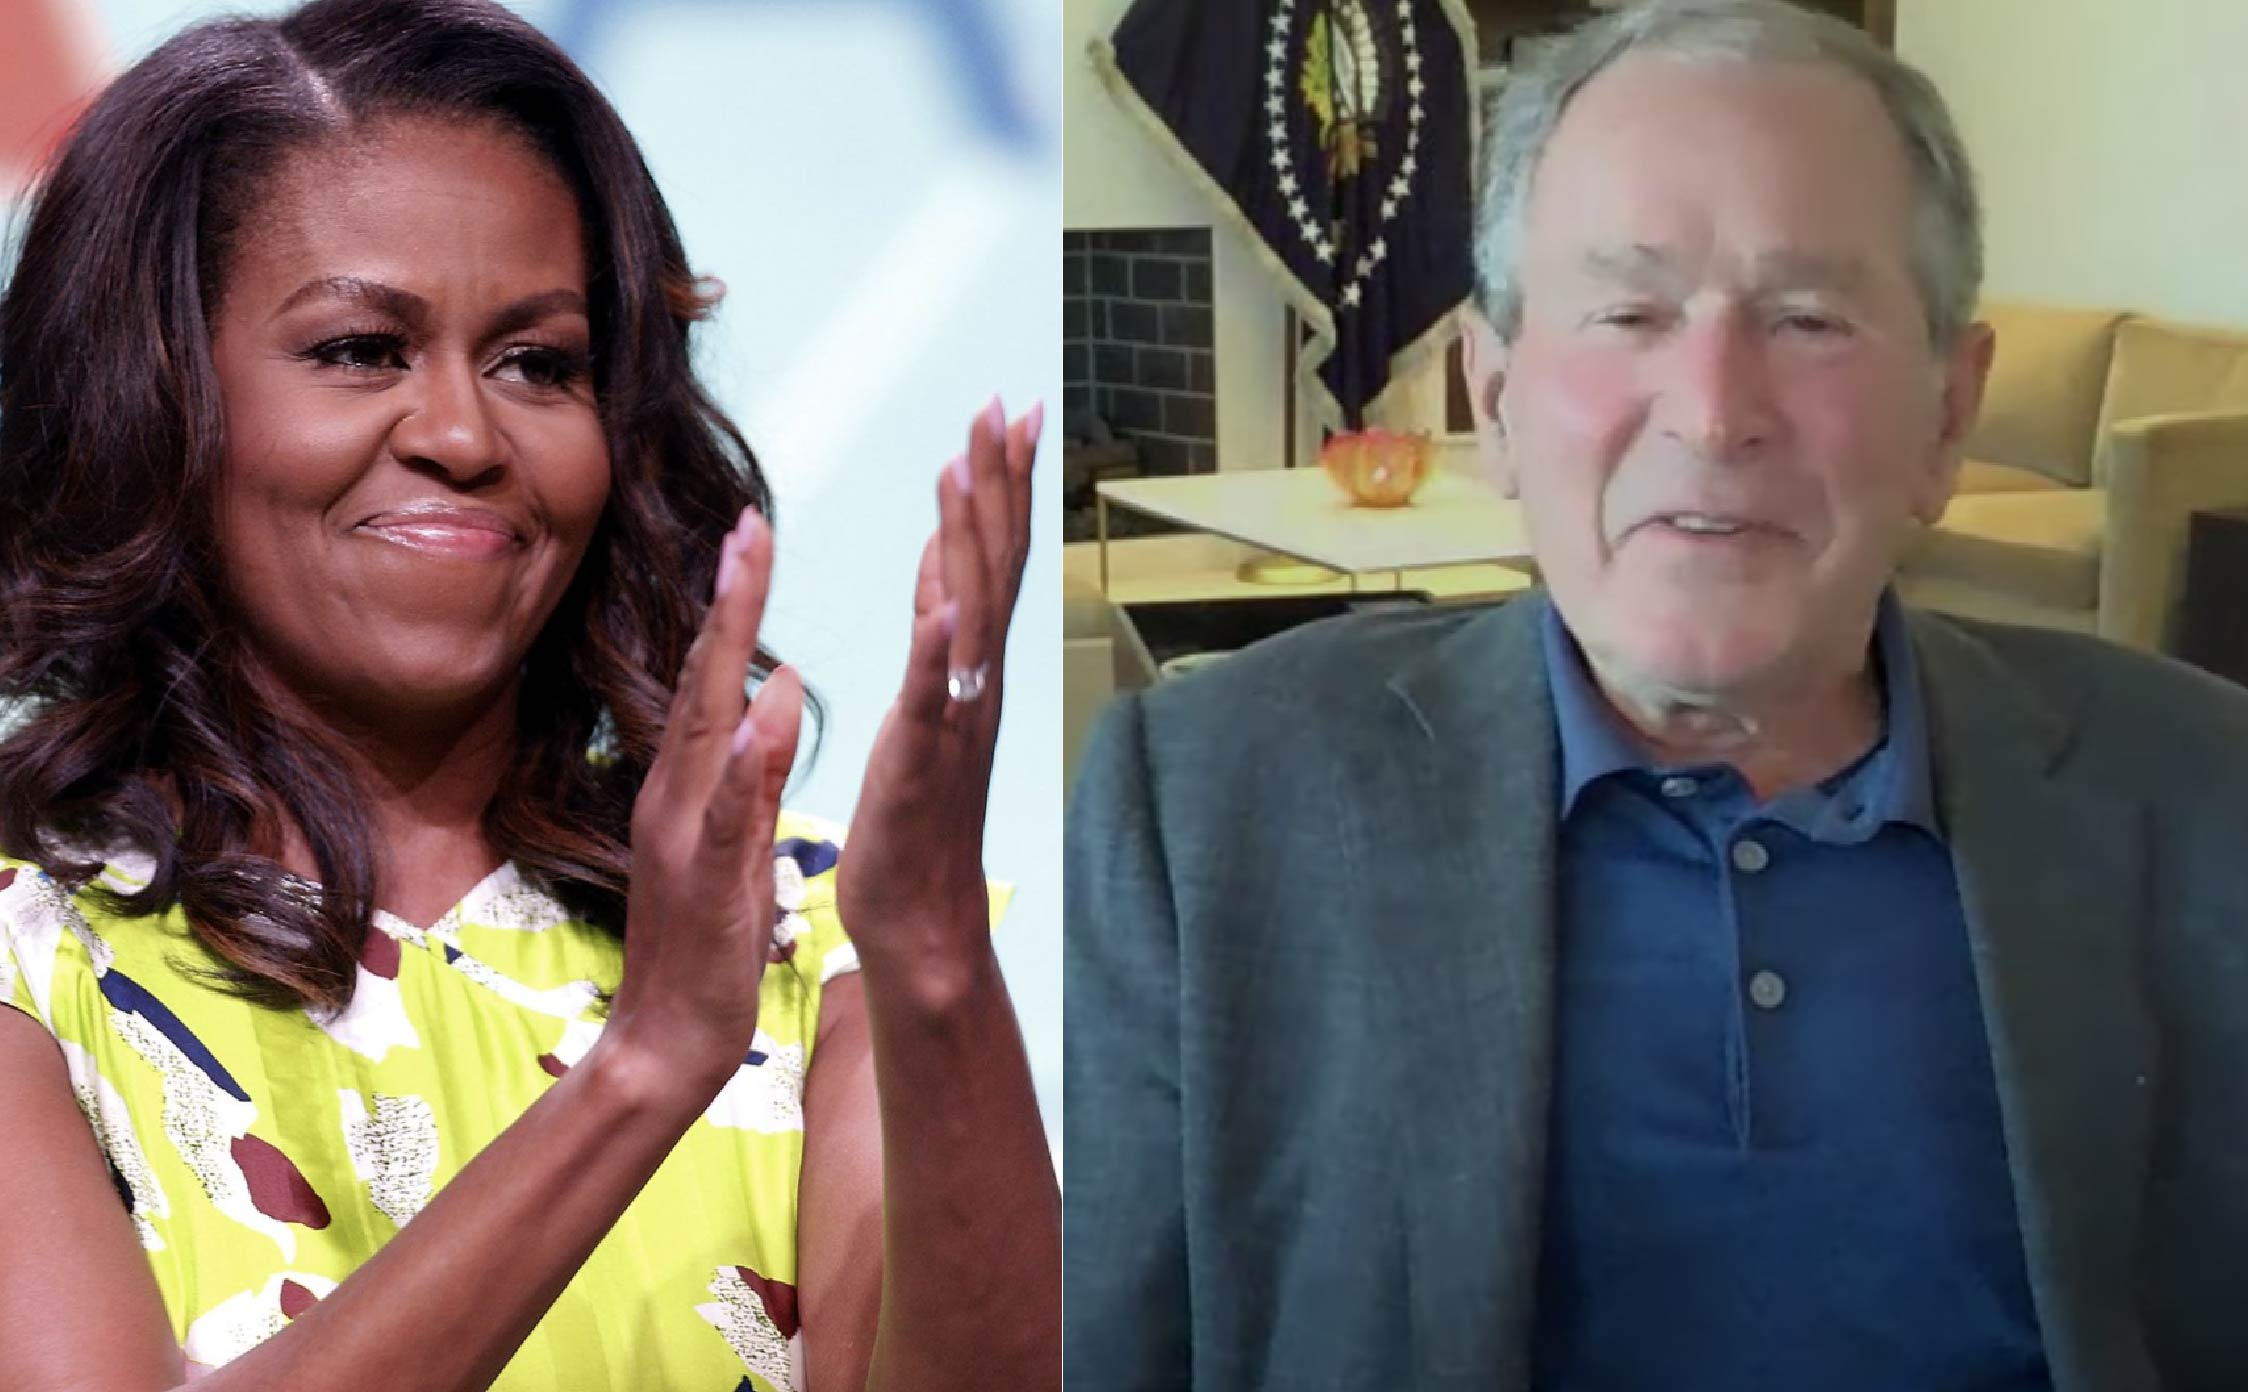 [VIDEO] George W. Bush Goes on Jimmy Kimmel to Brag About His Friendship With Michelle Obama